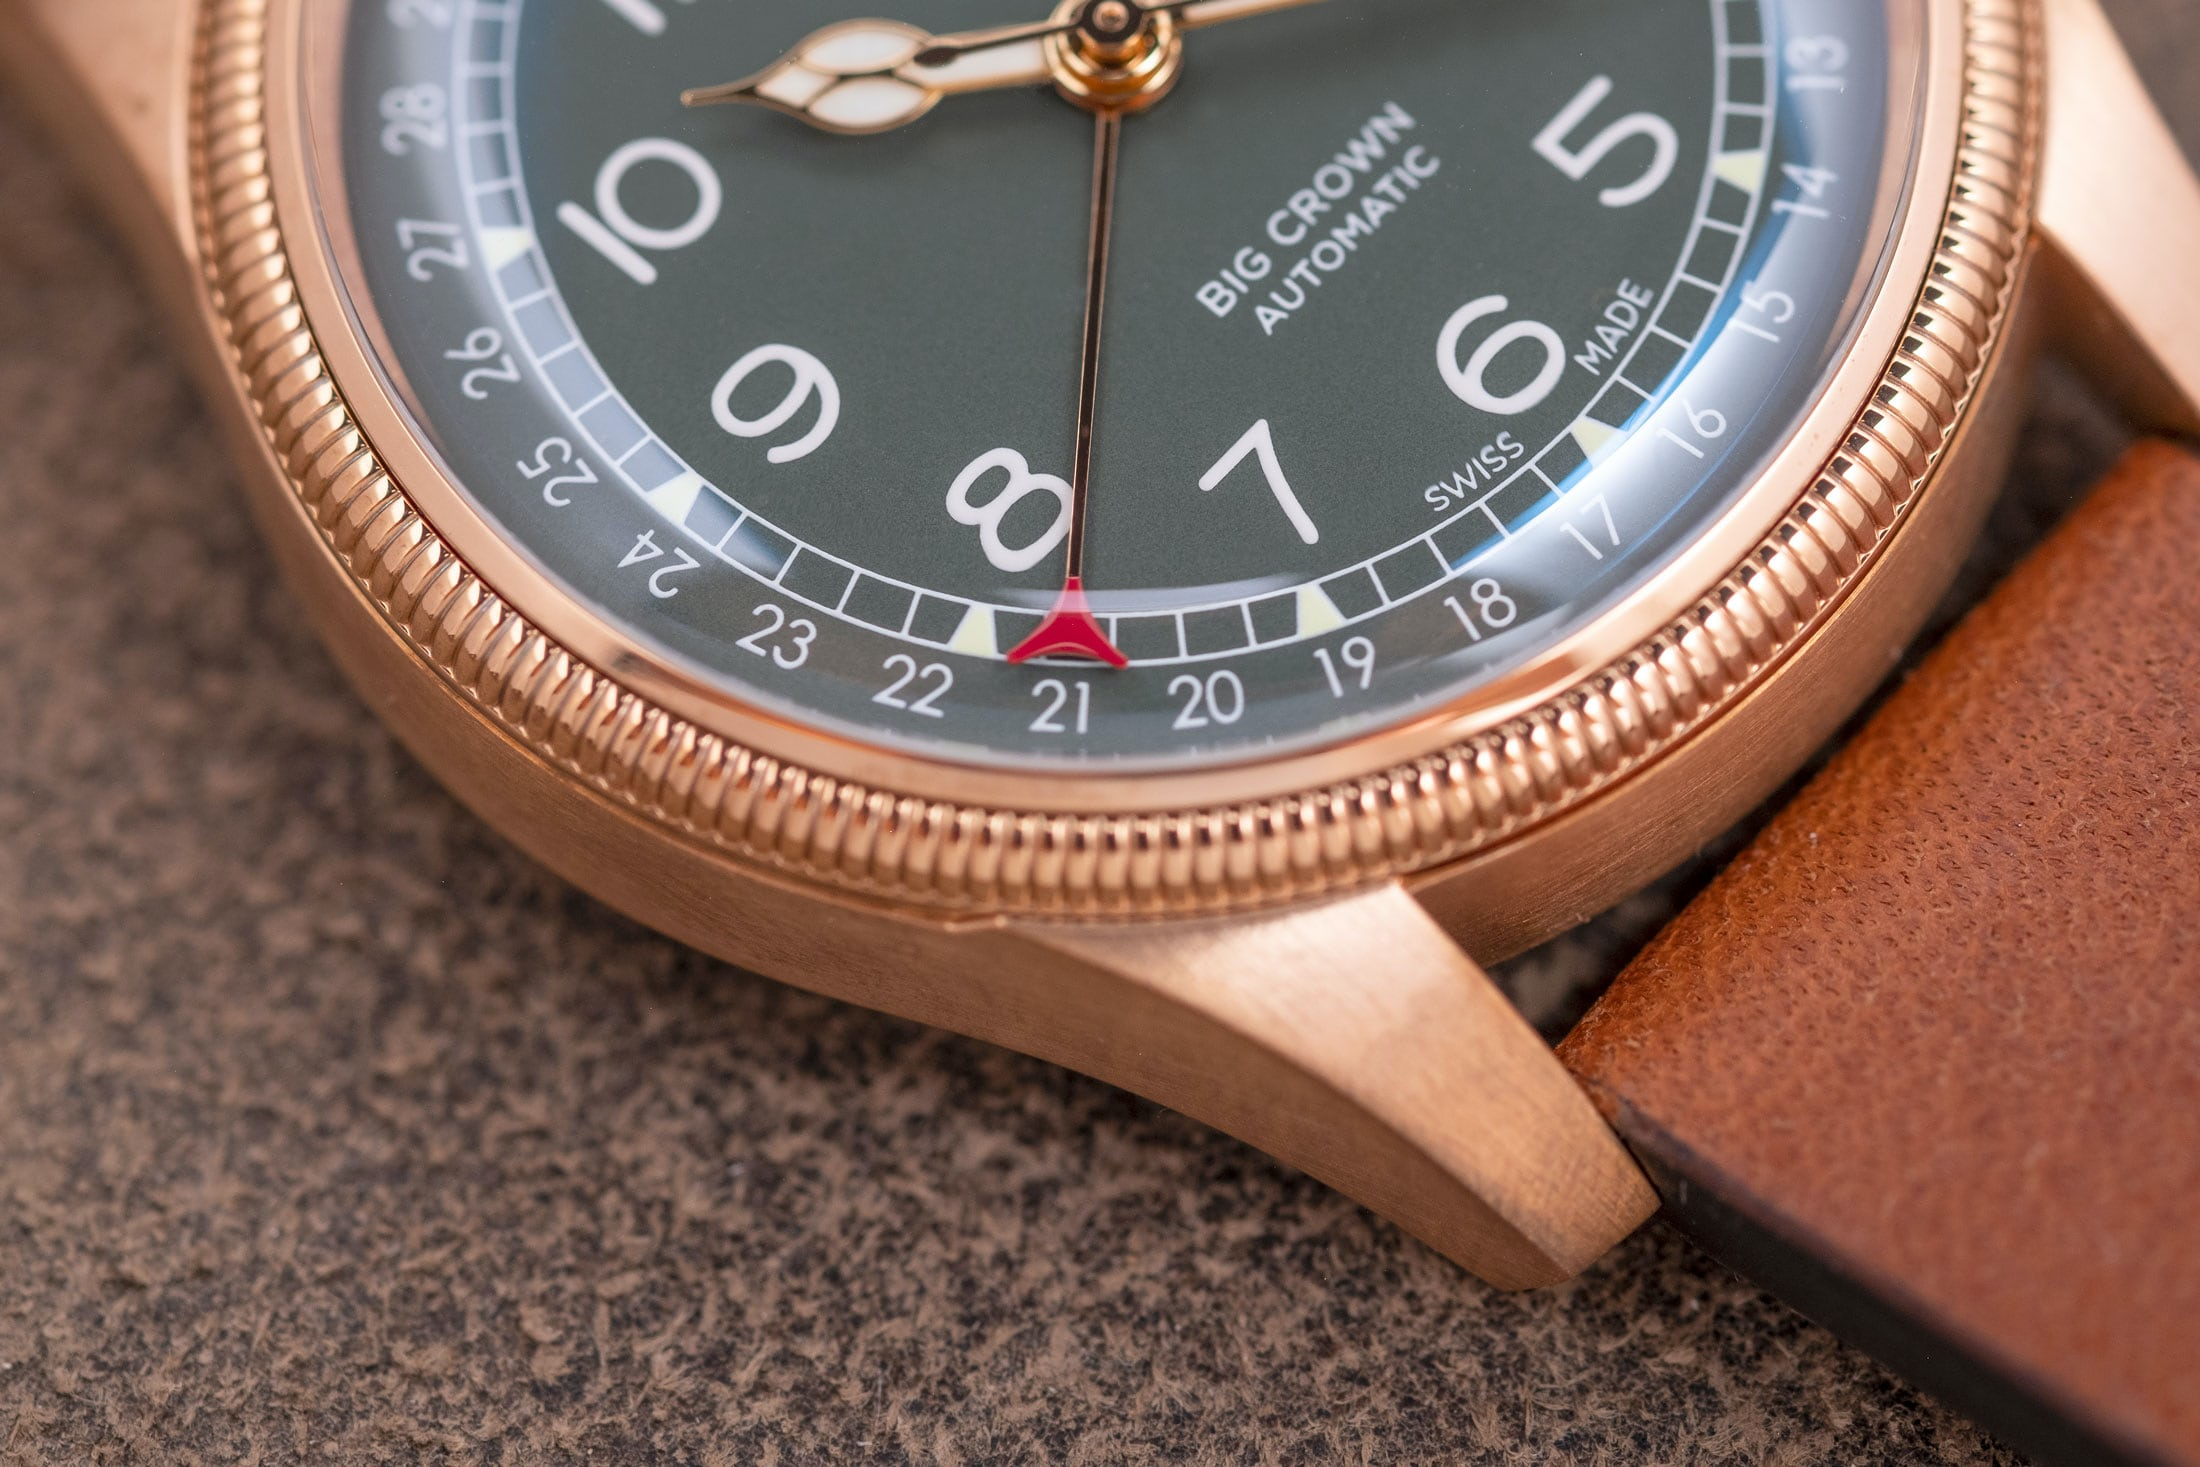 oris-big-crown-pointer-date-80y-anniversary-edition-face-up